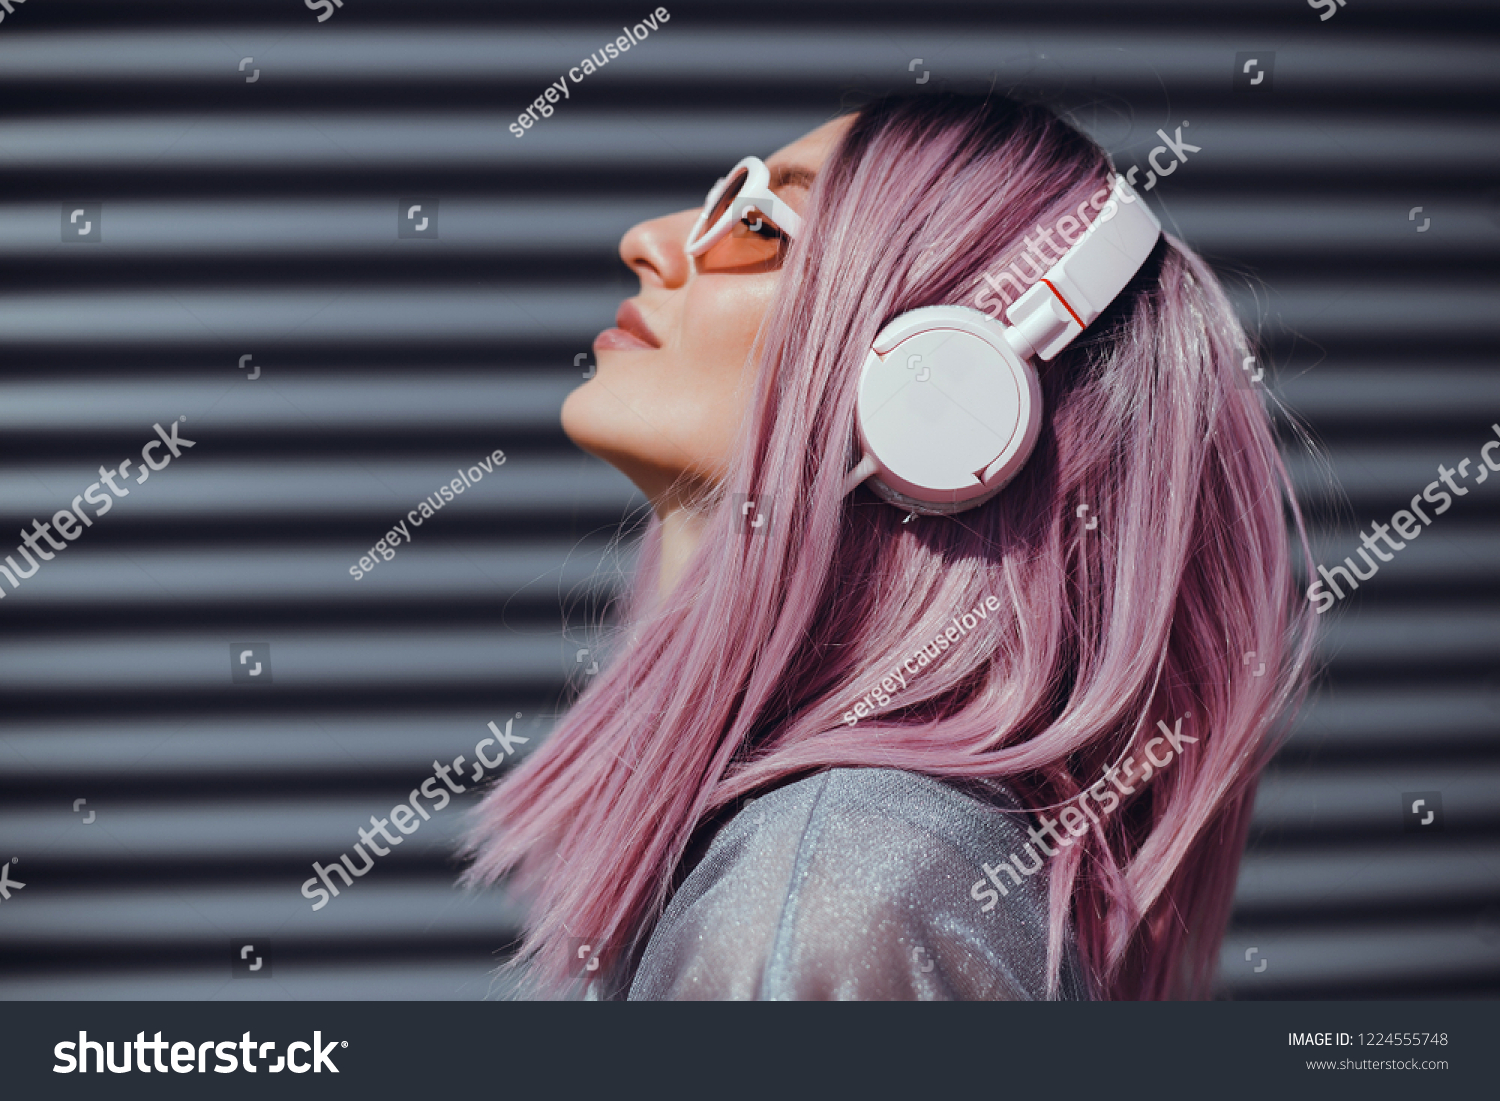 Beautiful young girl with purple pink hair listening to music on headphones, street style, outdoor portrait, hipster girl, music, mp3, Bali, beauty woman, sunglasses, orange color, concept #1224555748